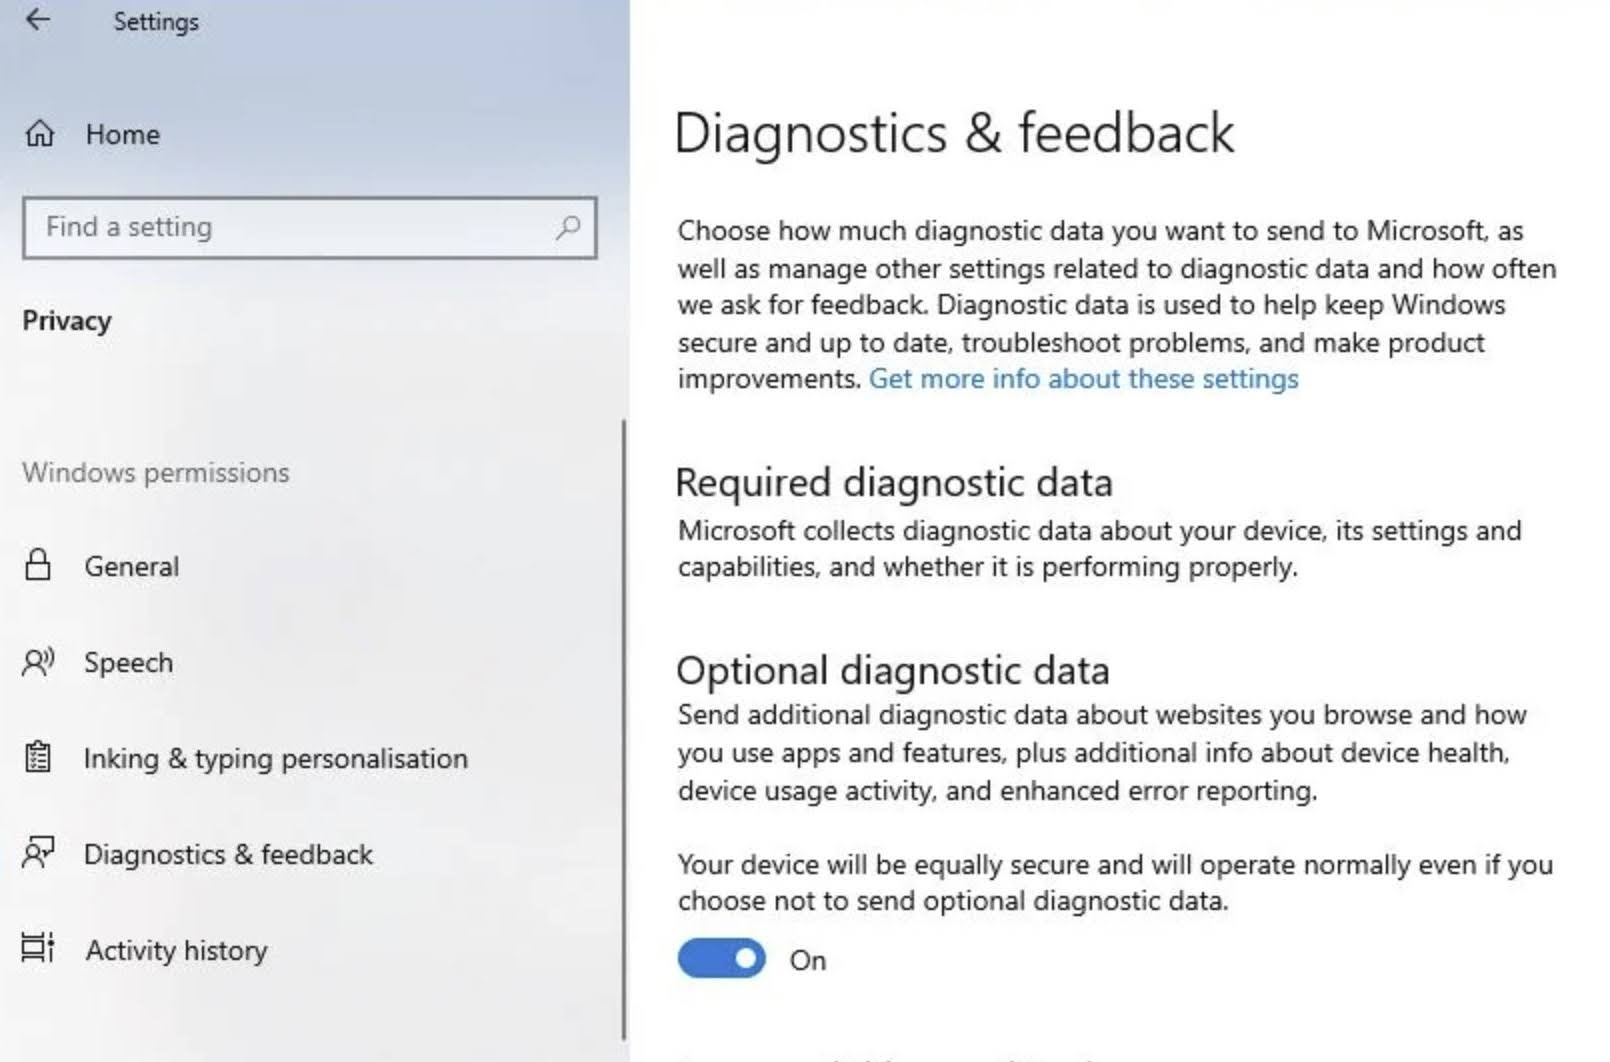 Make sure the Optional diagnostic data is toggle On.